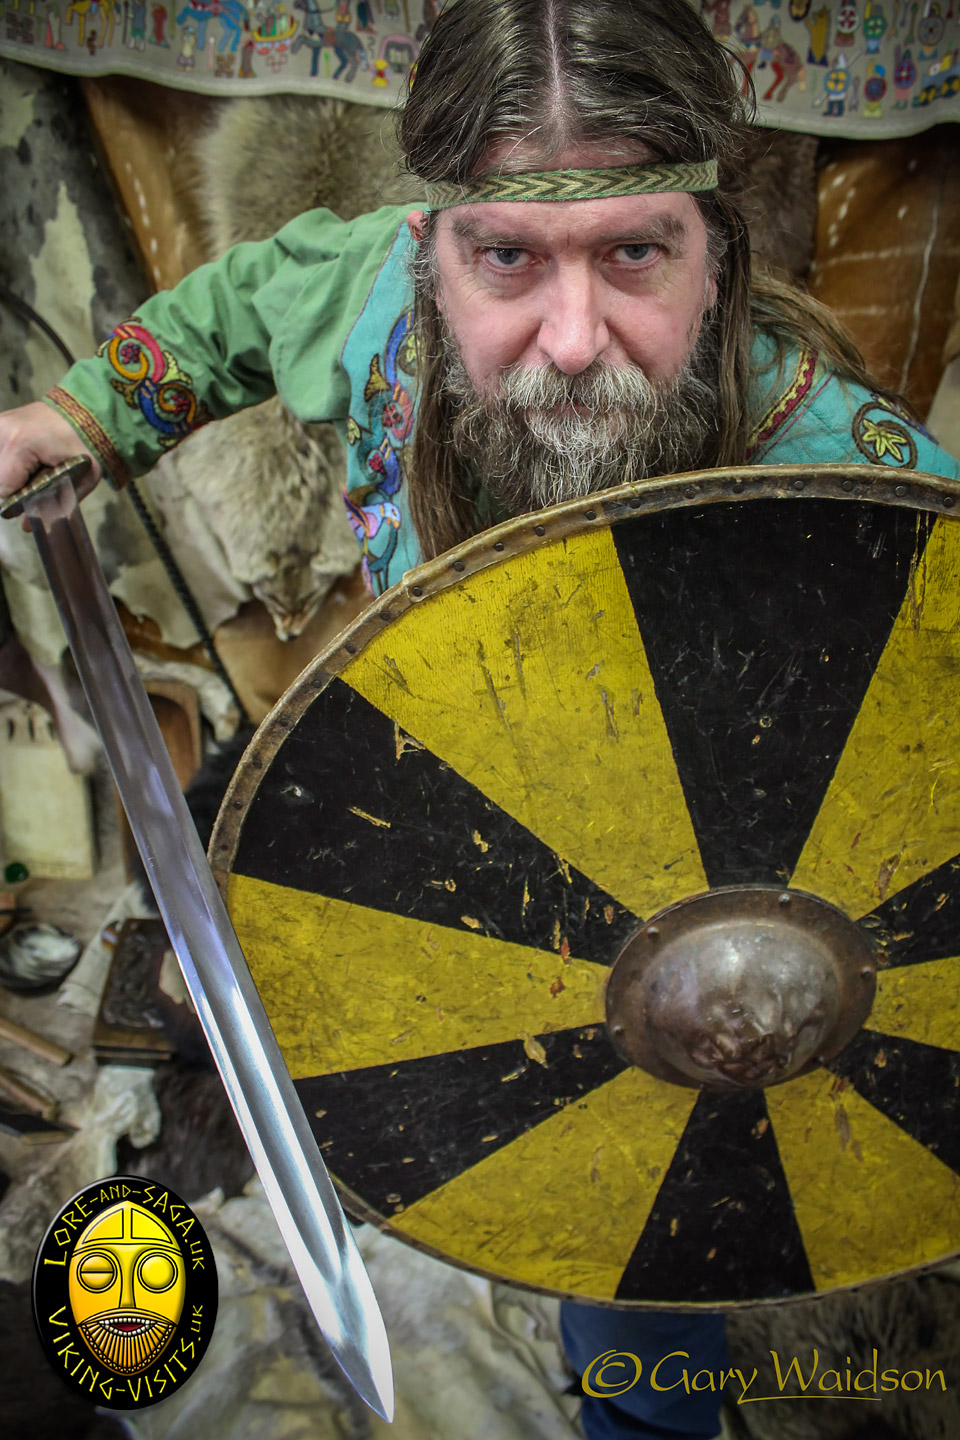 Don't annoy the Viking! - Image copyrighted © Gary Waidson. All rights reserved.